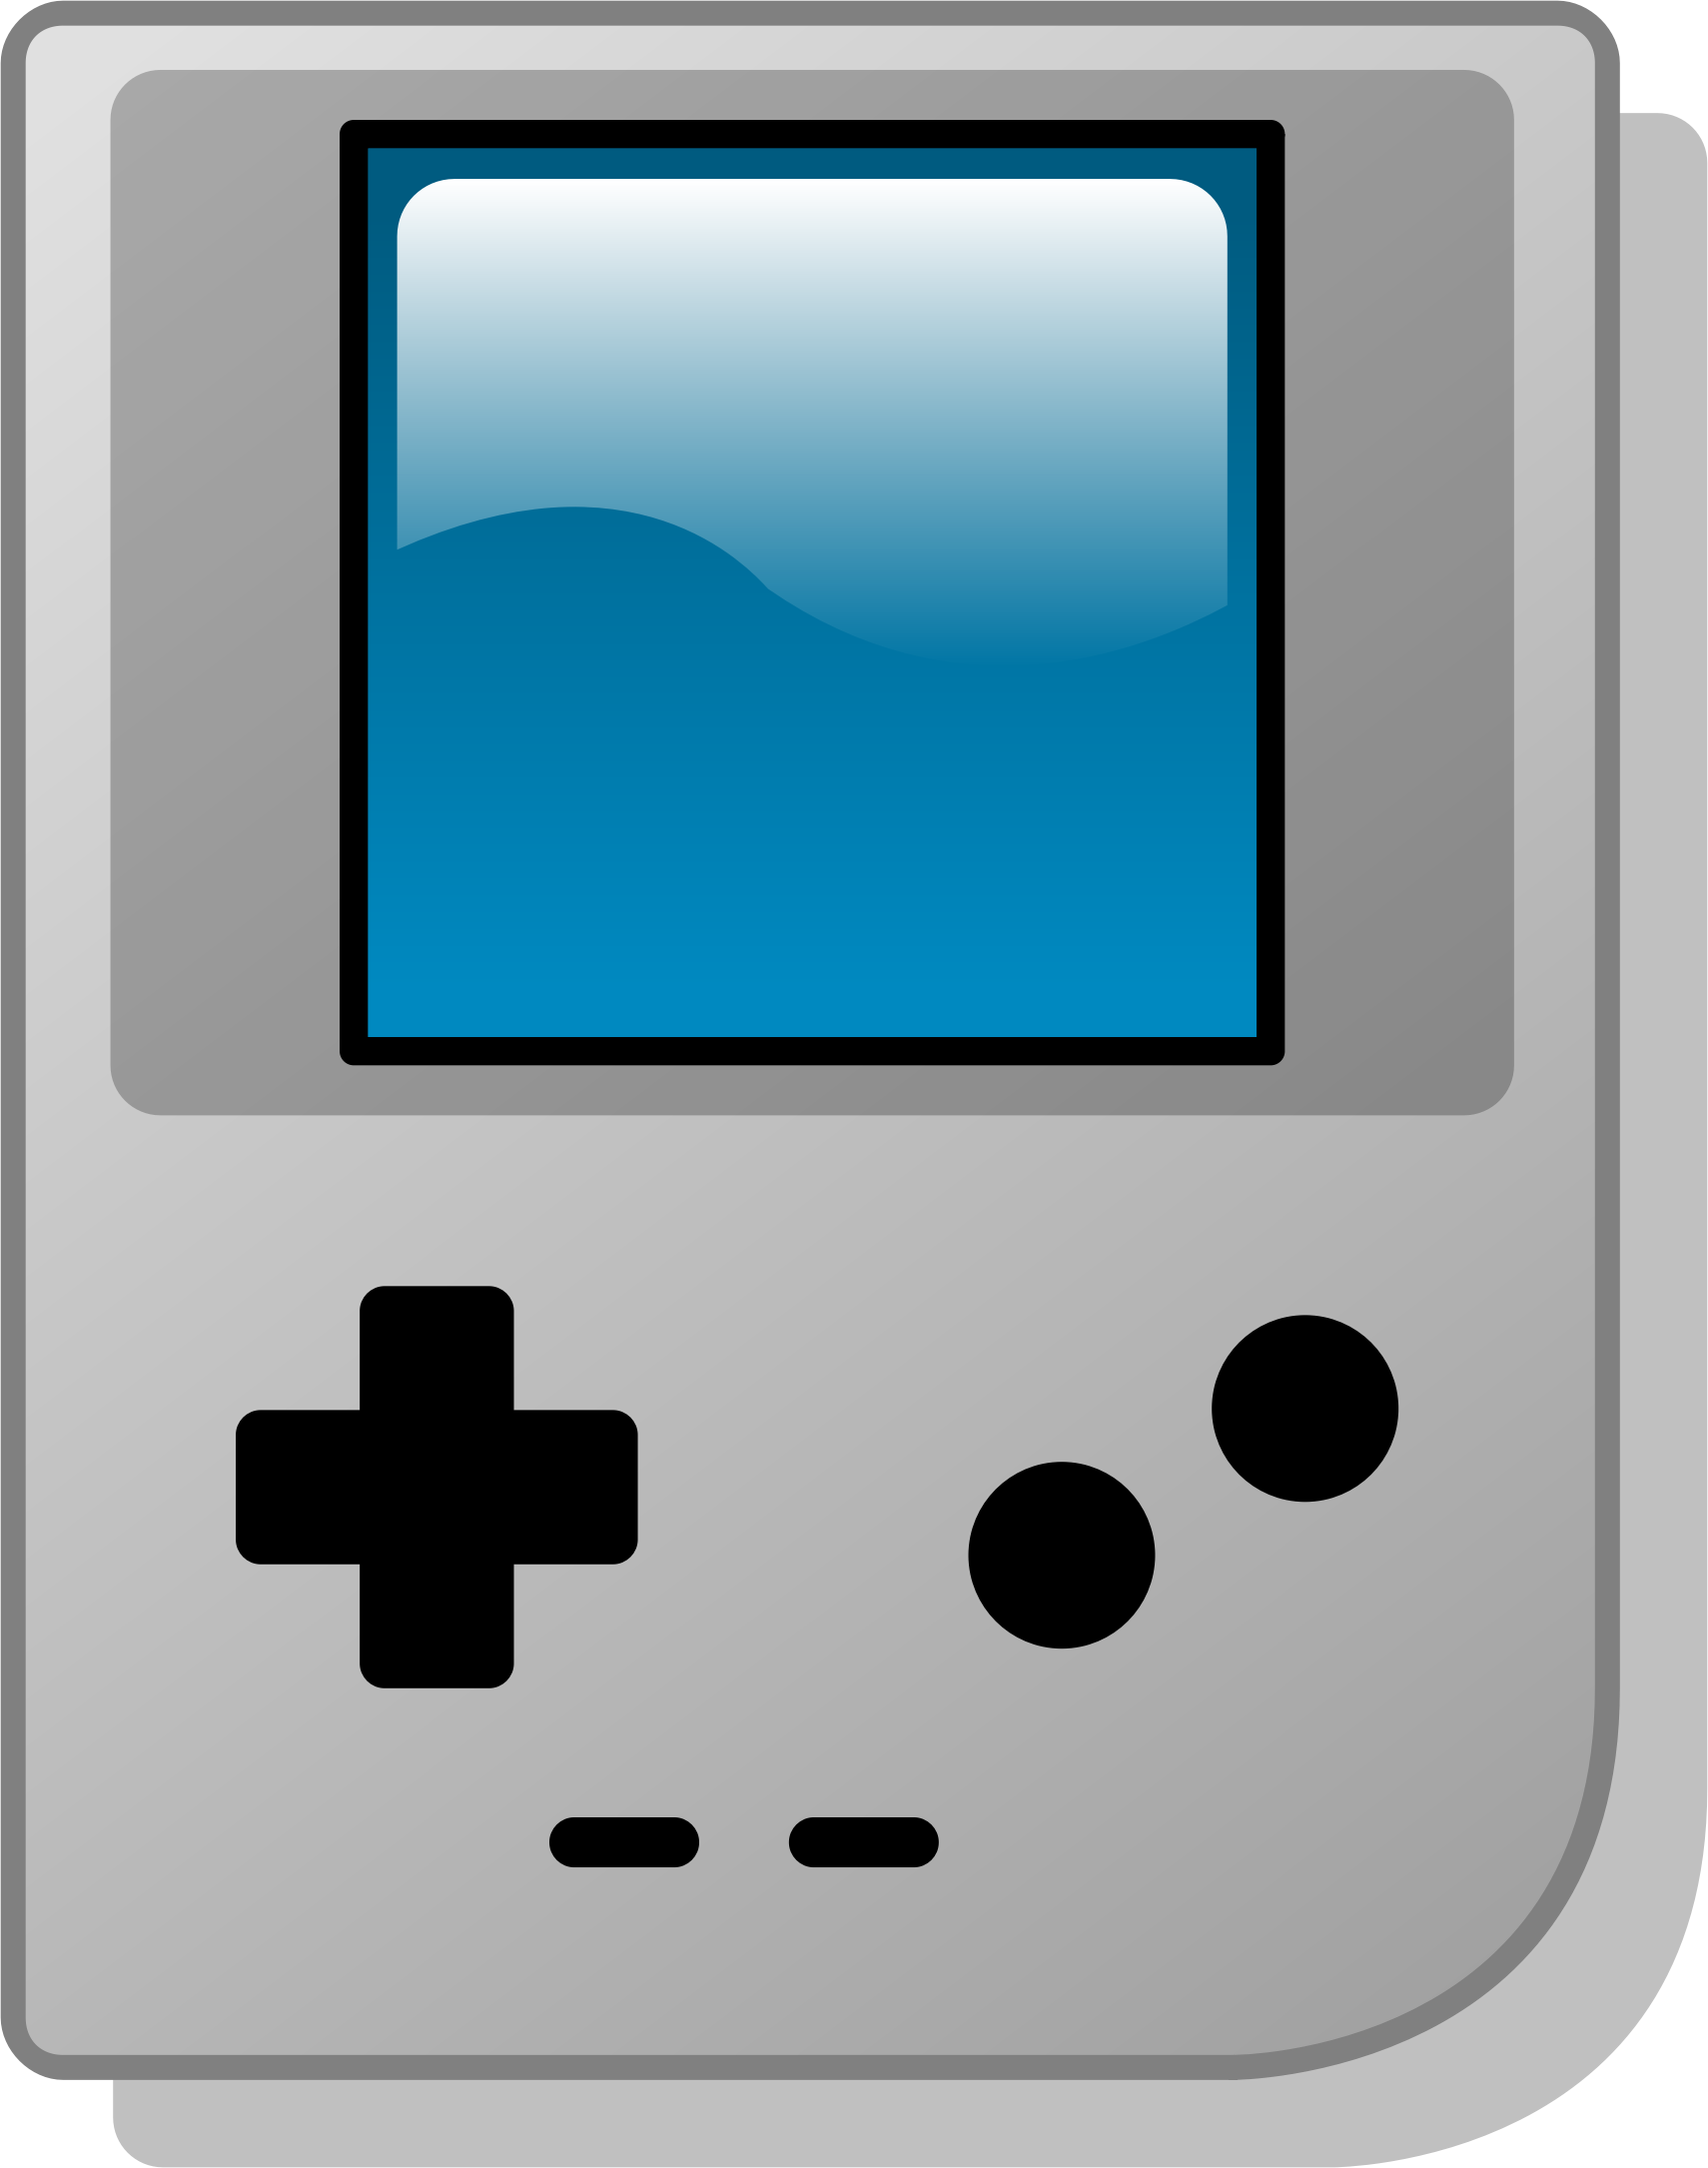 gameboy pocket by arnelsx